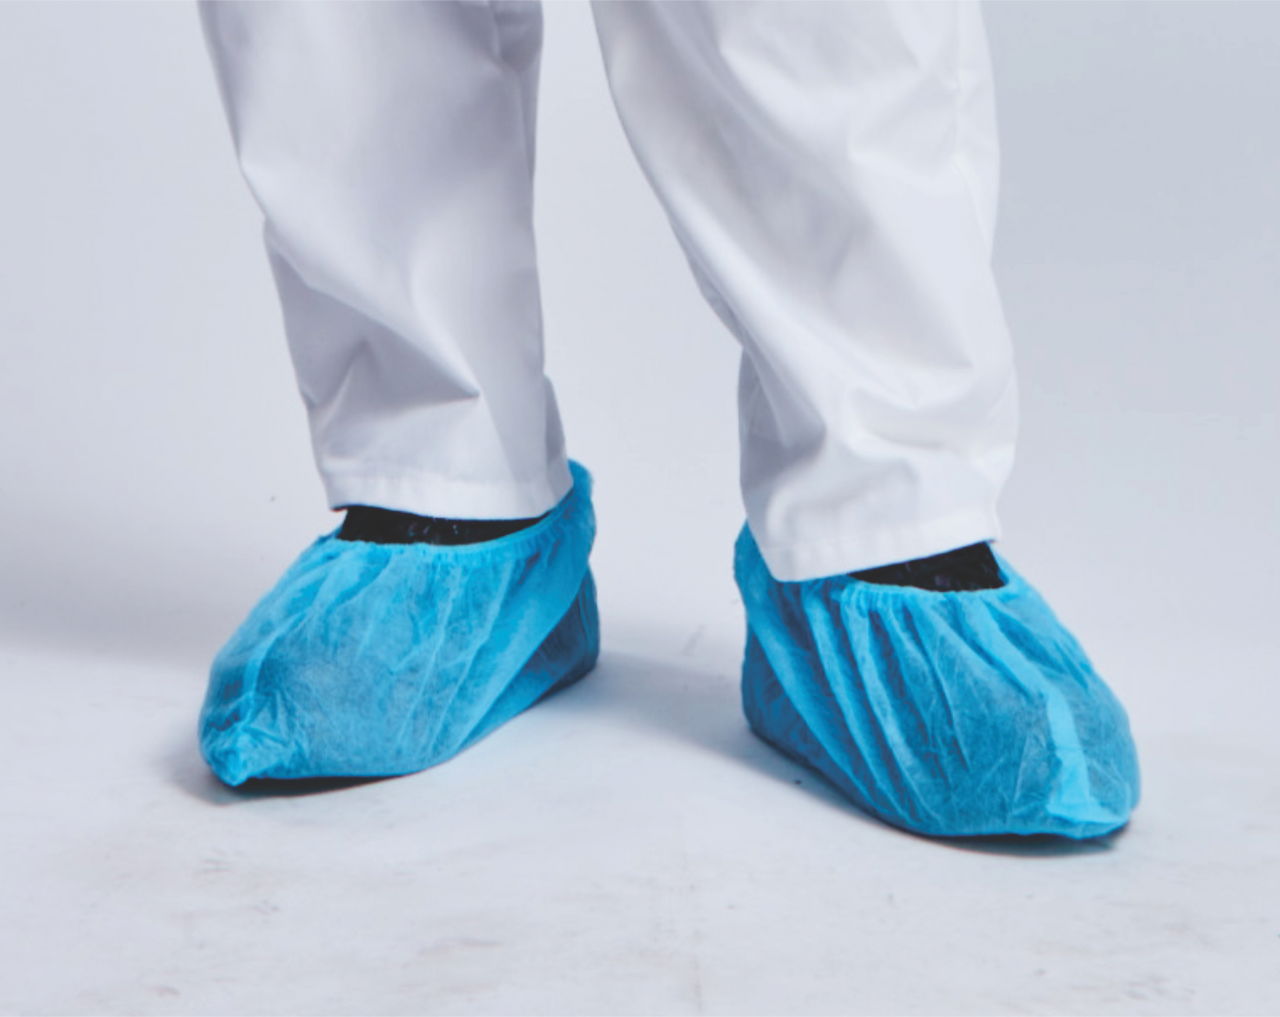 DISPOSABLE NON-WOVEN OVERSHOES